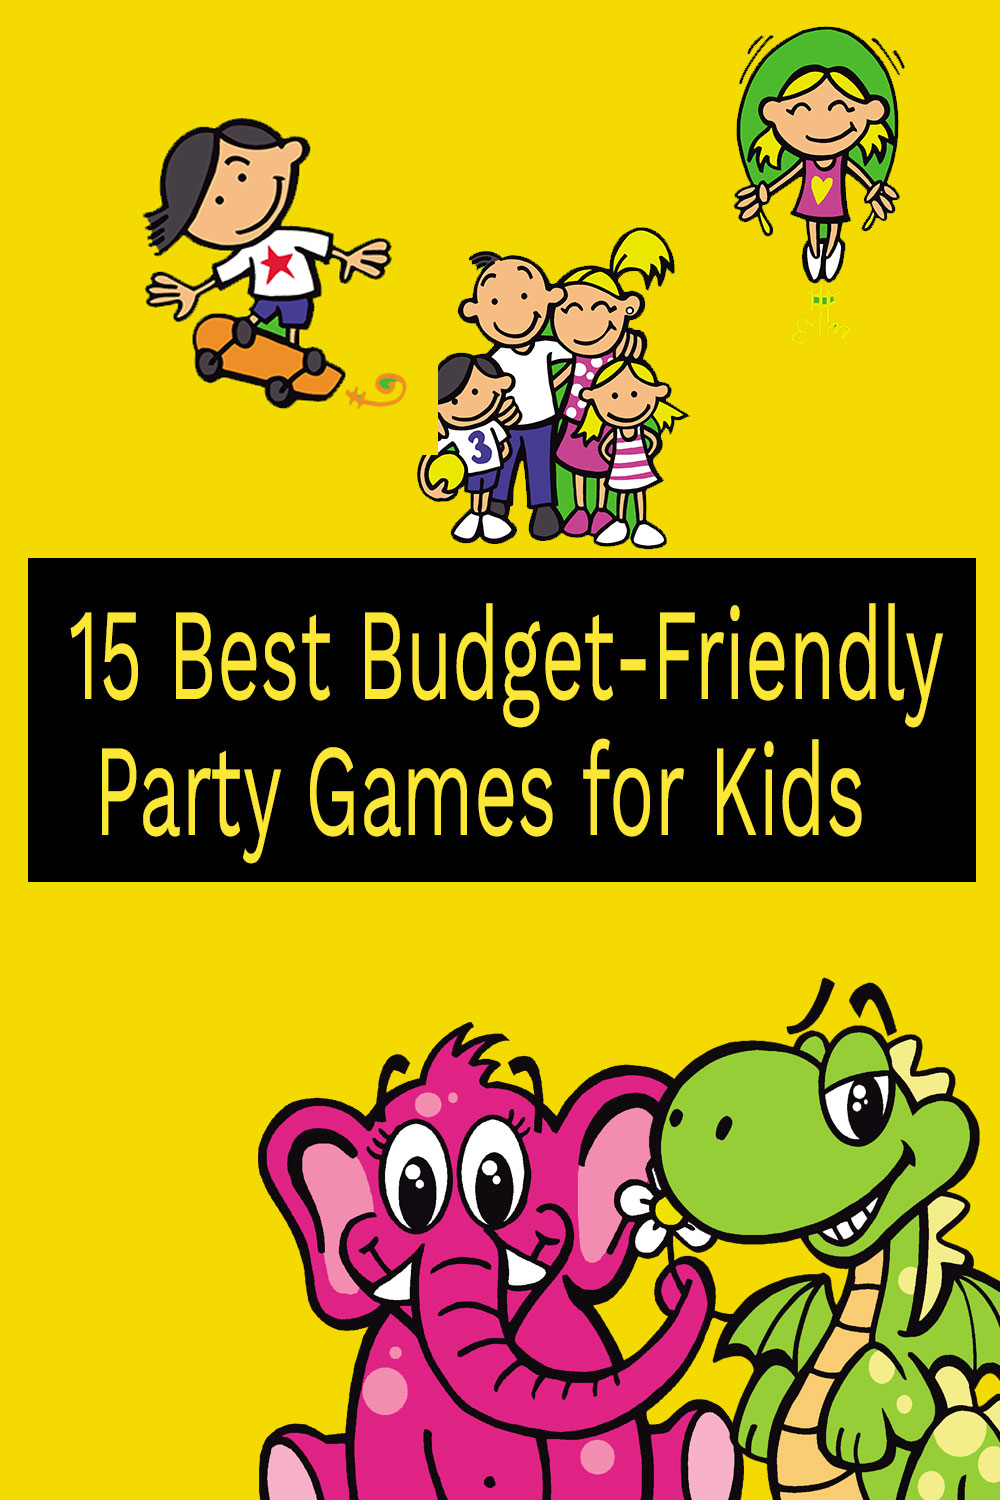 15 Best Budget-Friendly Party Games for Kids